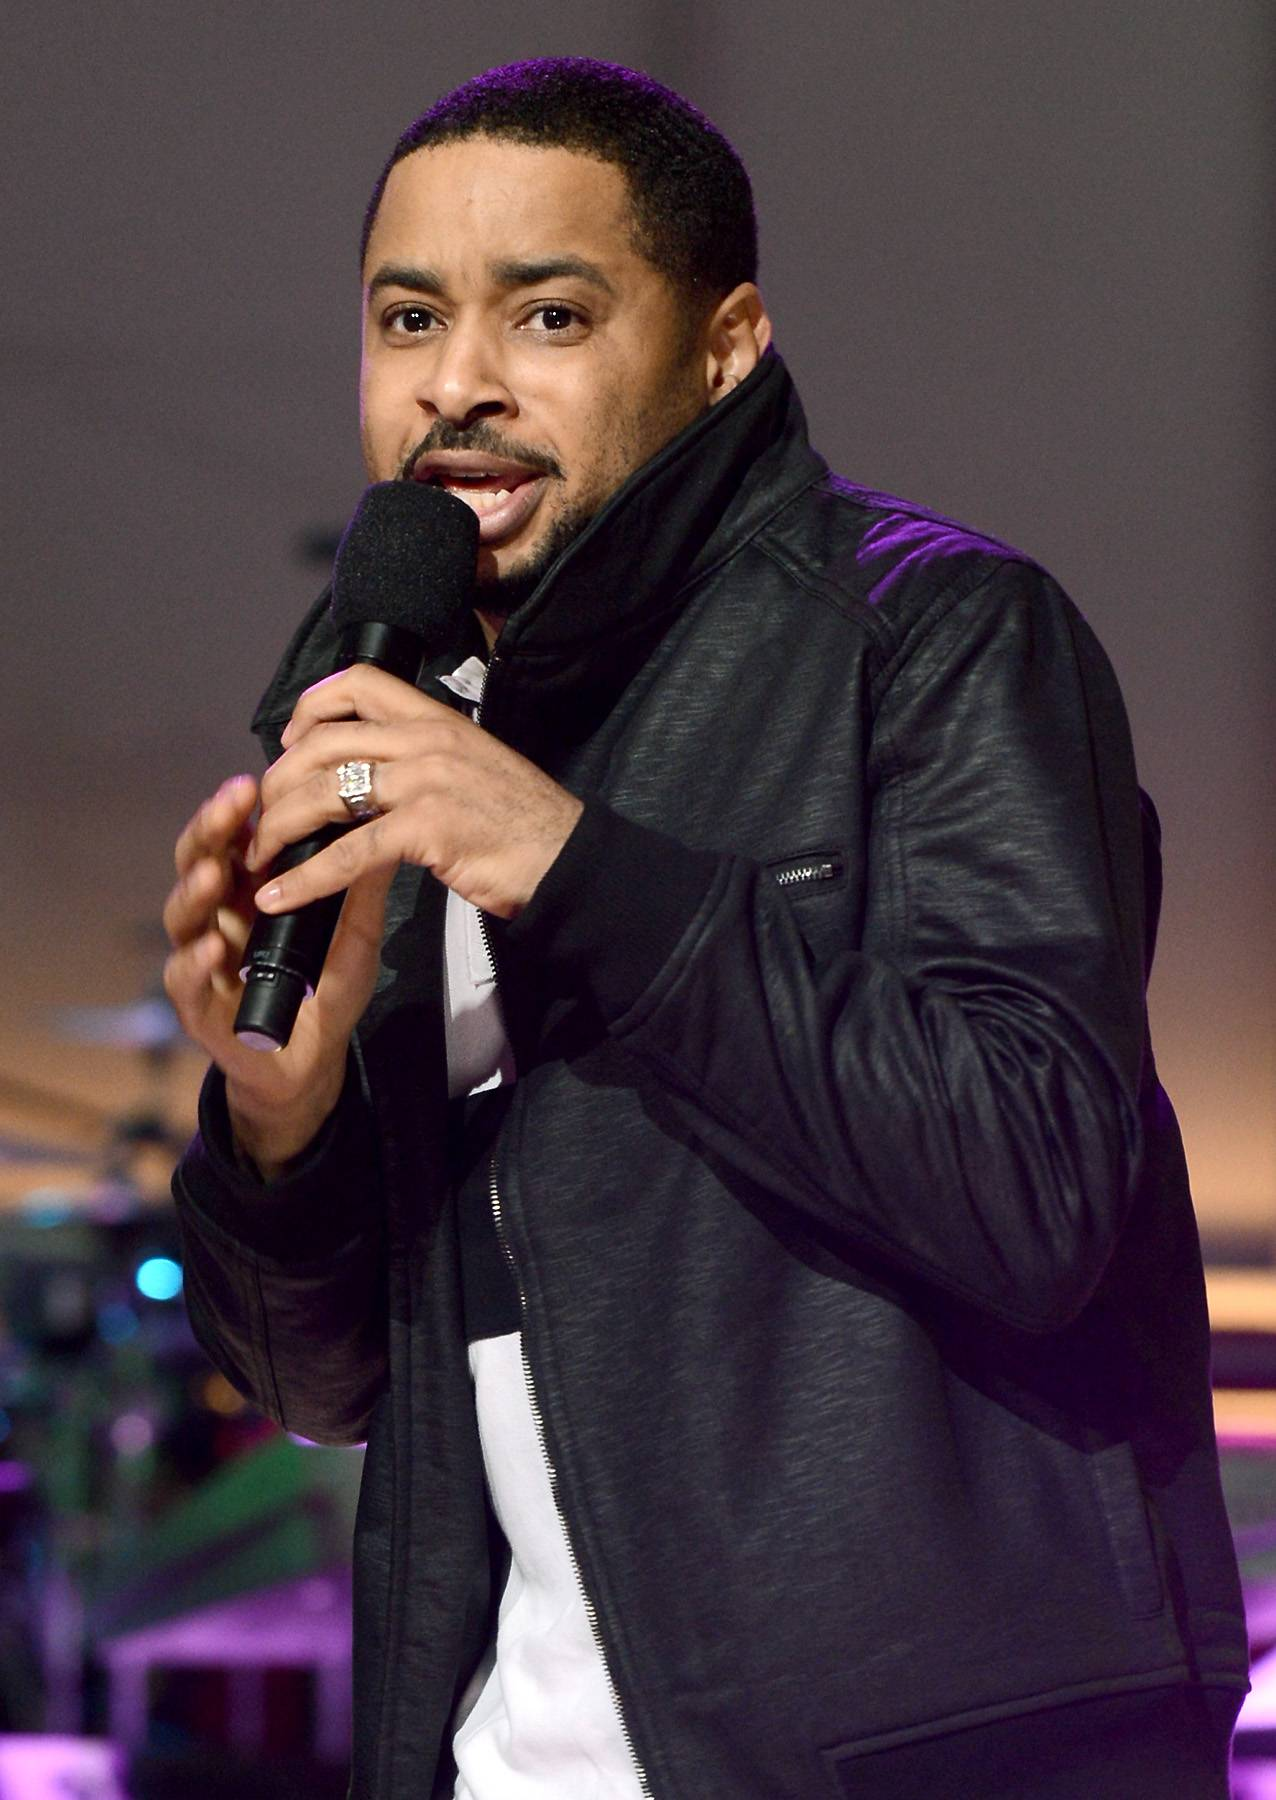 Smokie Norful - We met Smokie Norful in 2002 with the release of his debut album, I Need You Now. 12 years later, the Grammy winner is still topping the charts and inspiring believers everywhere as a pastor and musician.(Photo: Kevin Winter/Getty Images for BET)